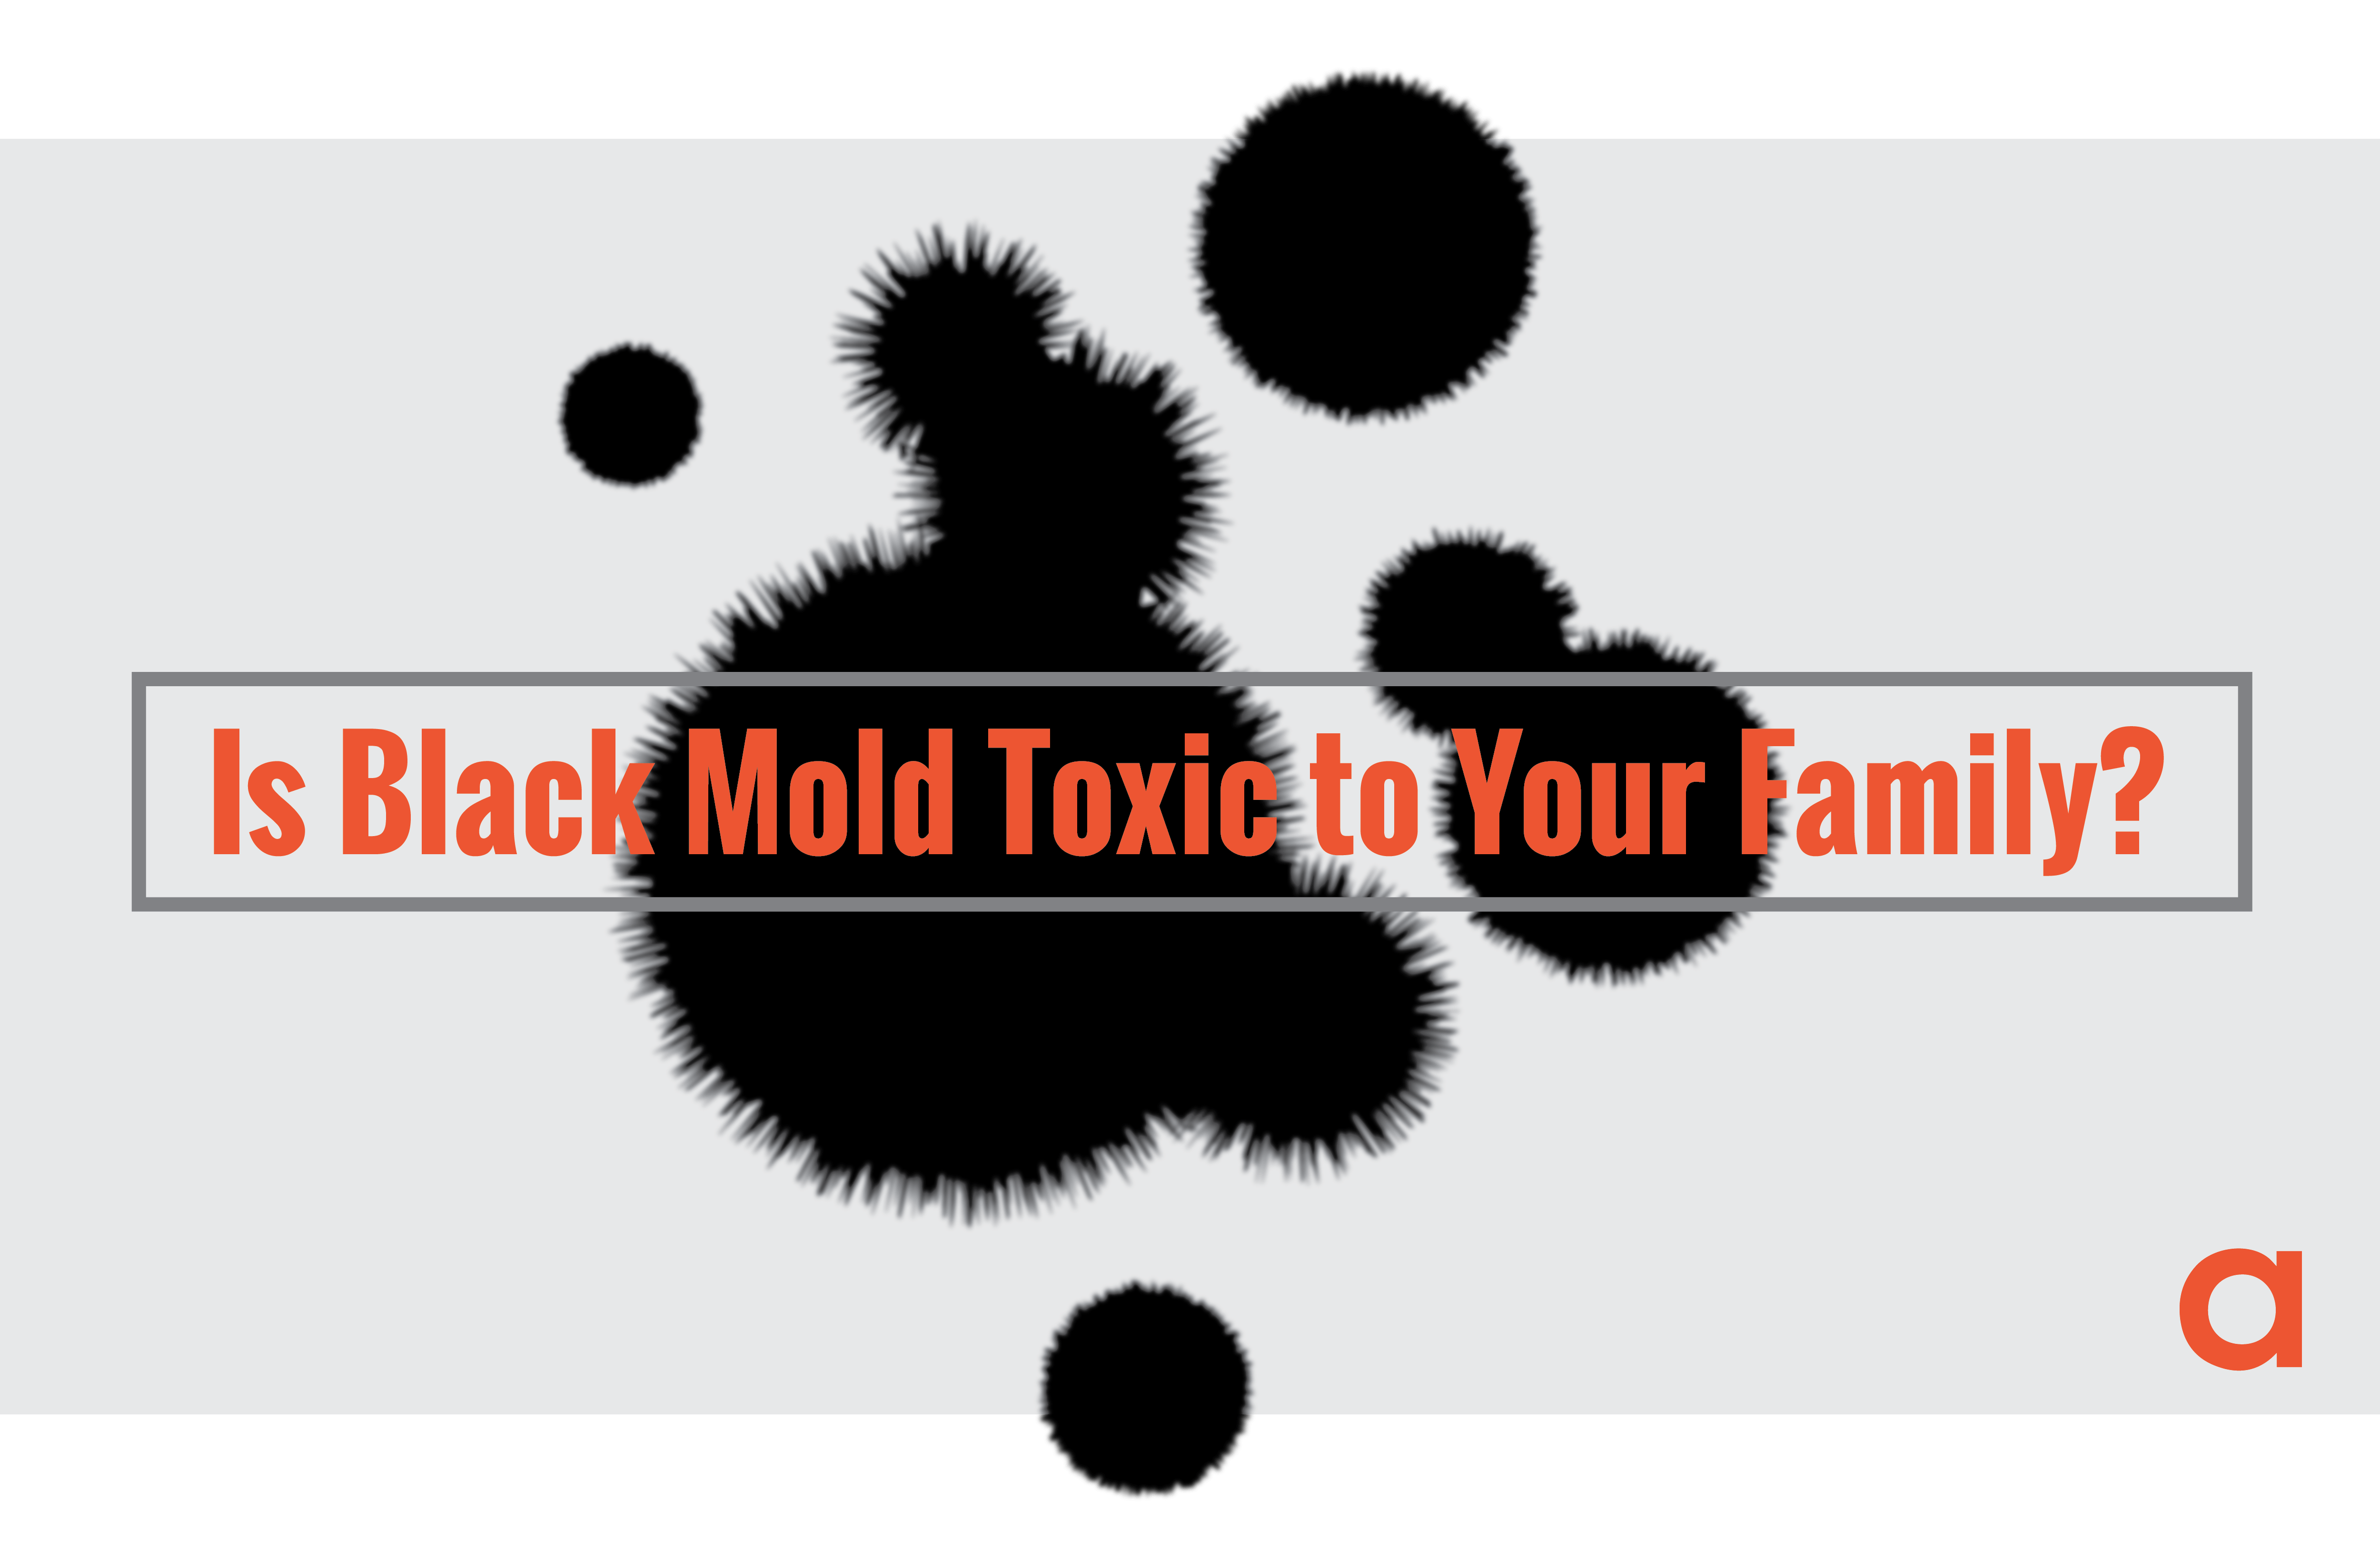 Is black mold toxic to your family?